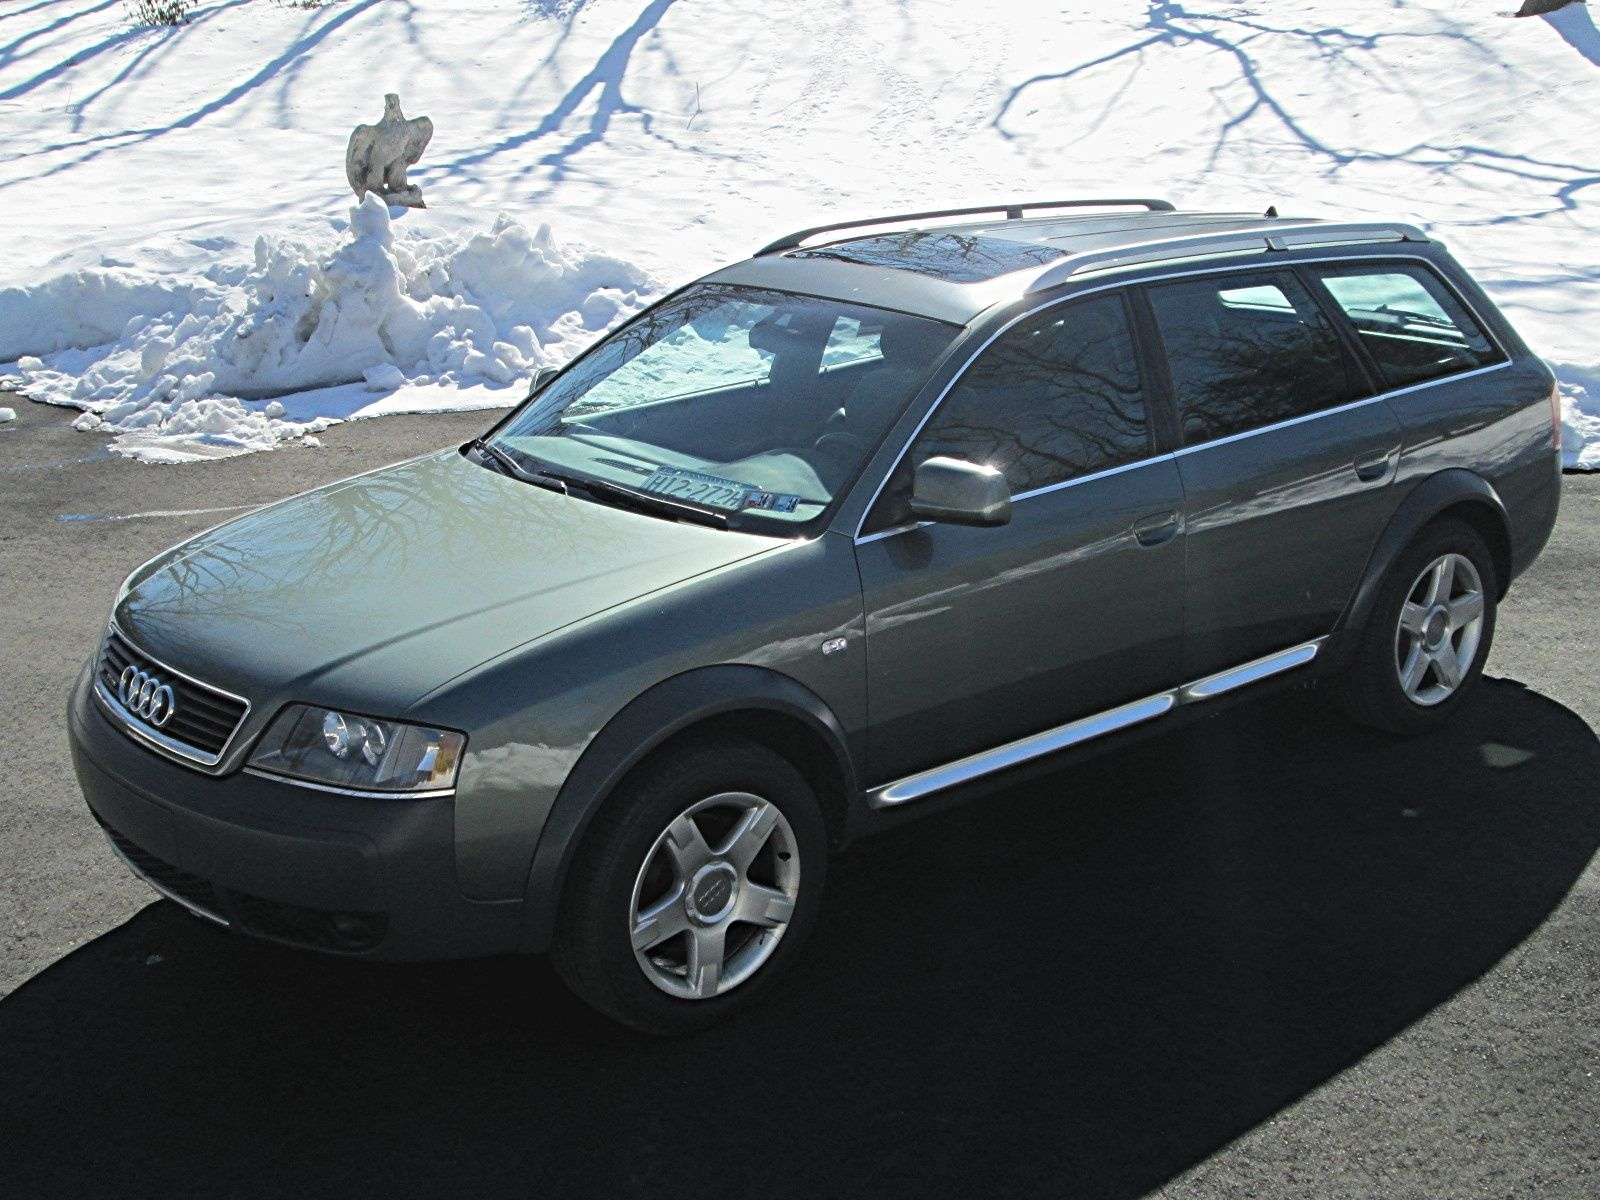 Picture of 2002 Audi Allroad Quattro 4 Dr Turbo AWD Wagon